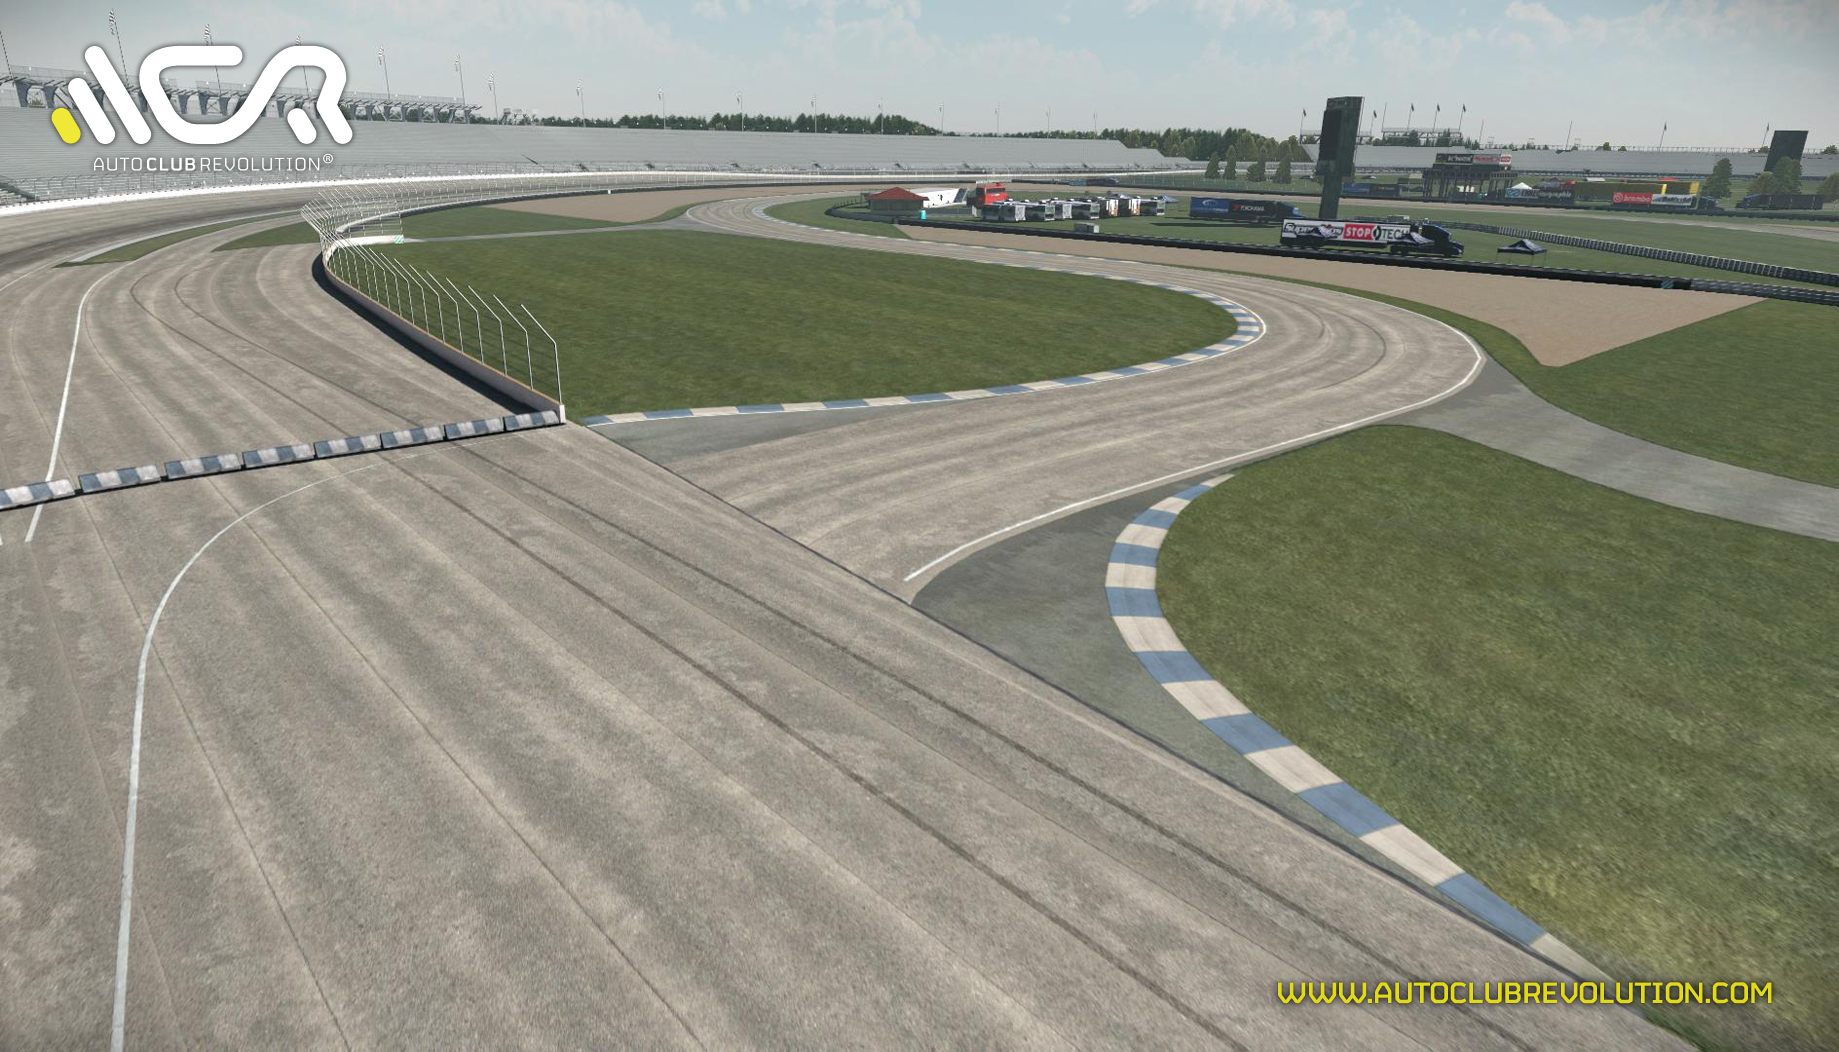 Auto Club Revolution - Indianapolis Motor Speedway 4